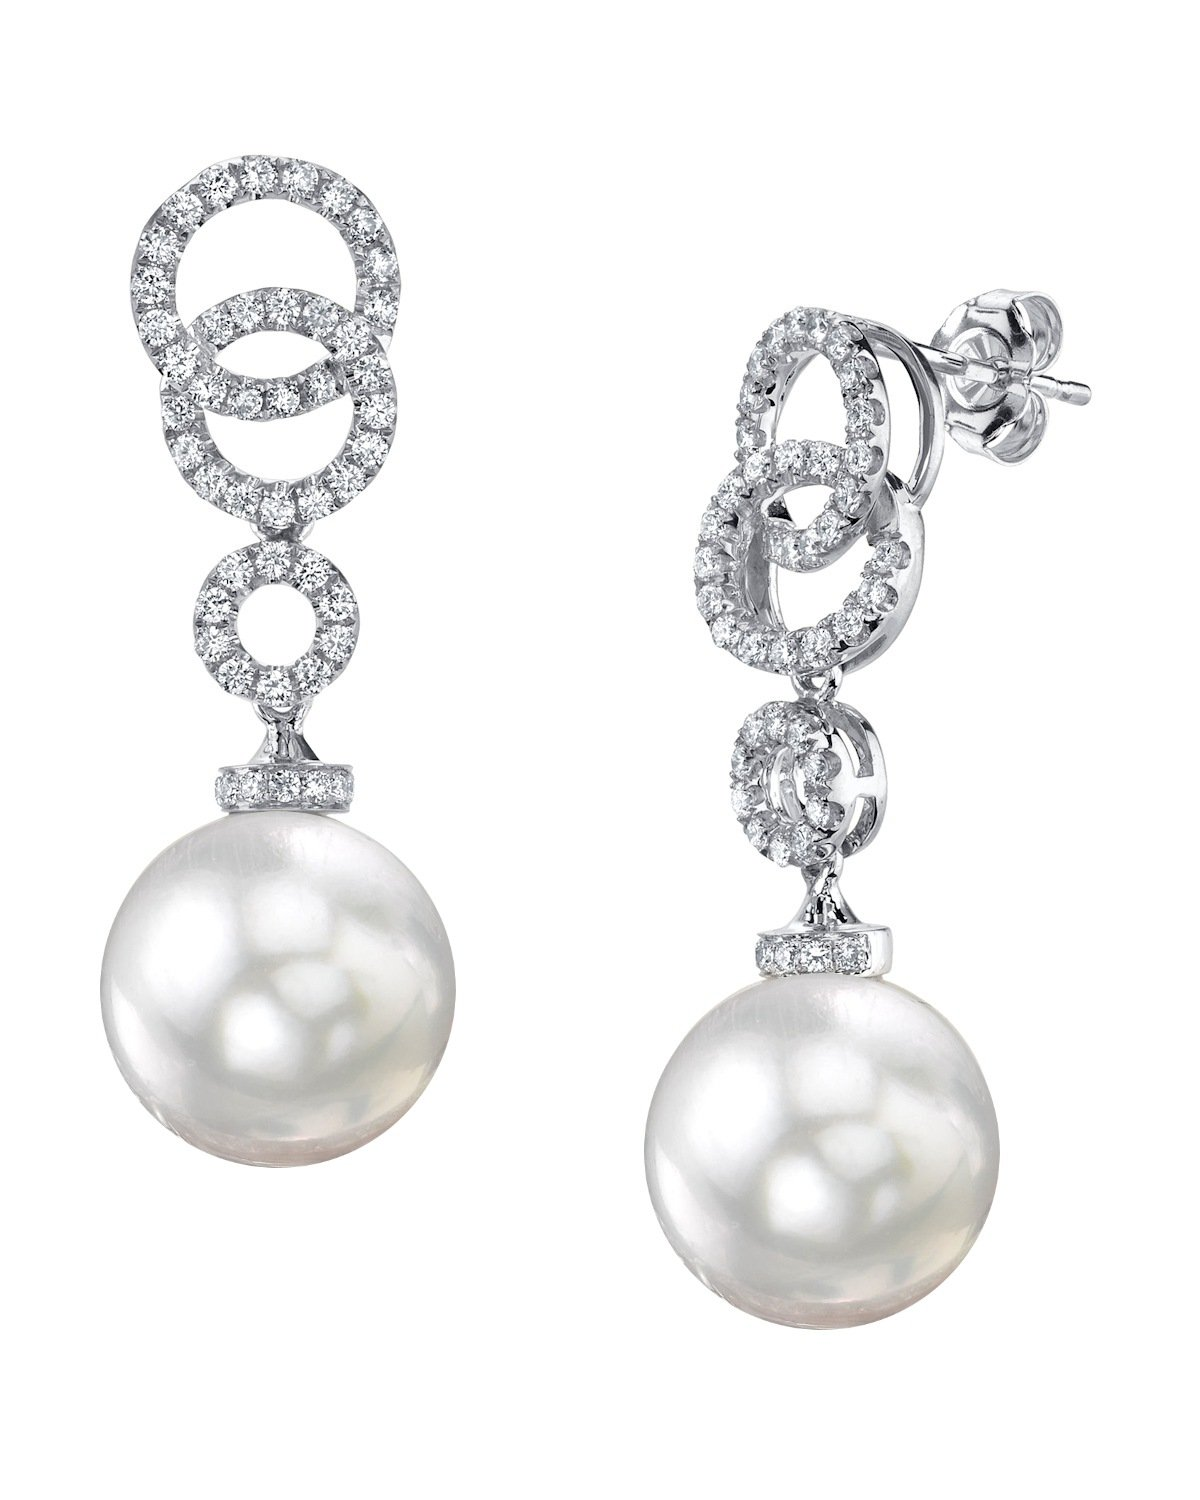 18K Gold 12mm White South Sea Cultured Pearl Diamond Link Earrings